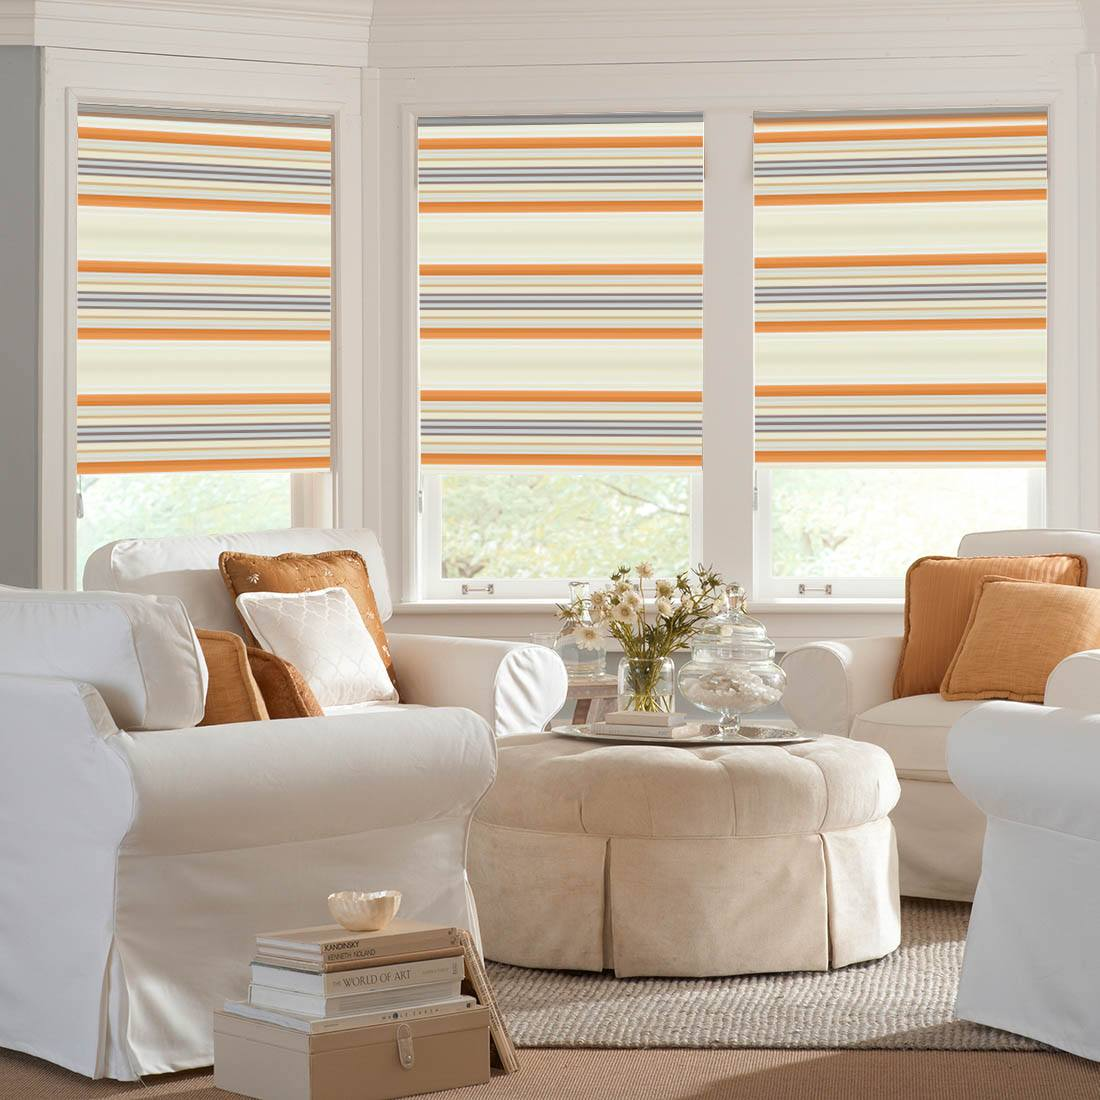 Colorful lines on roller blinds